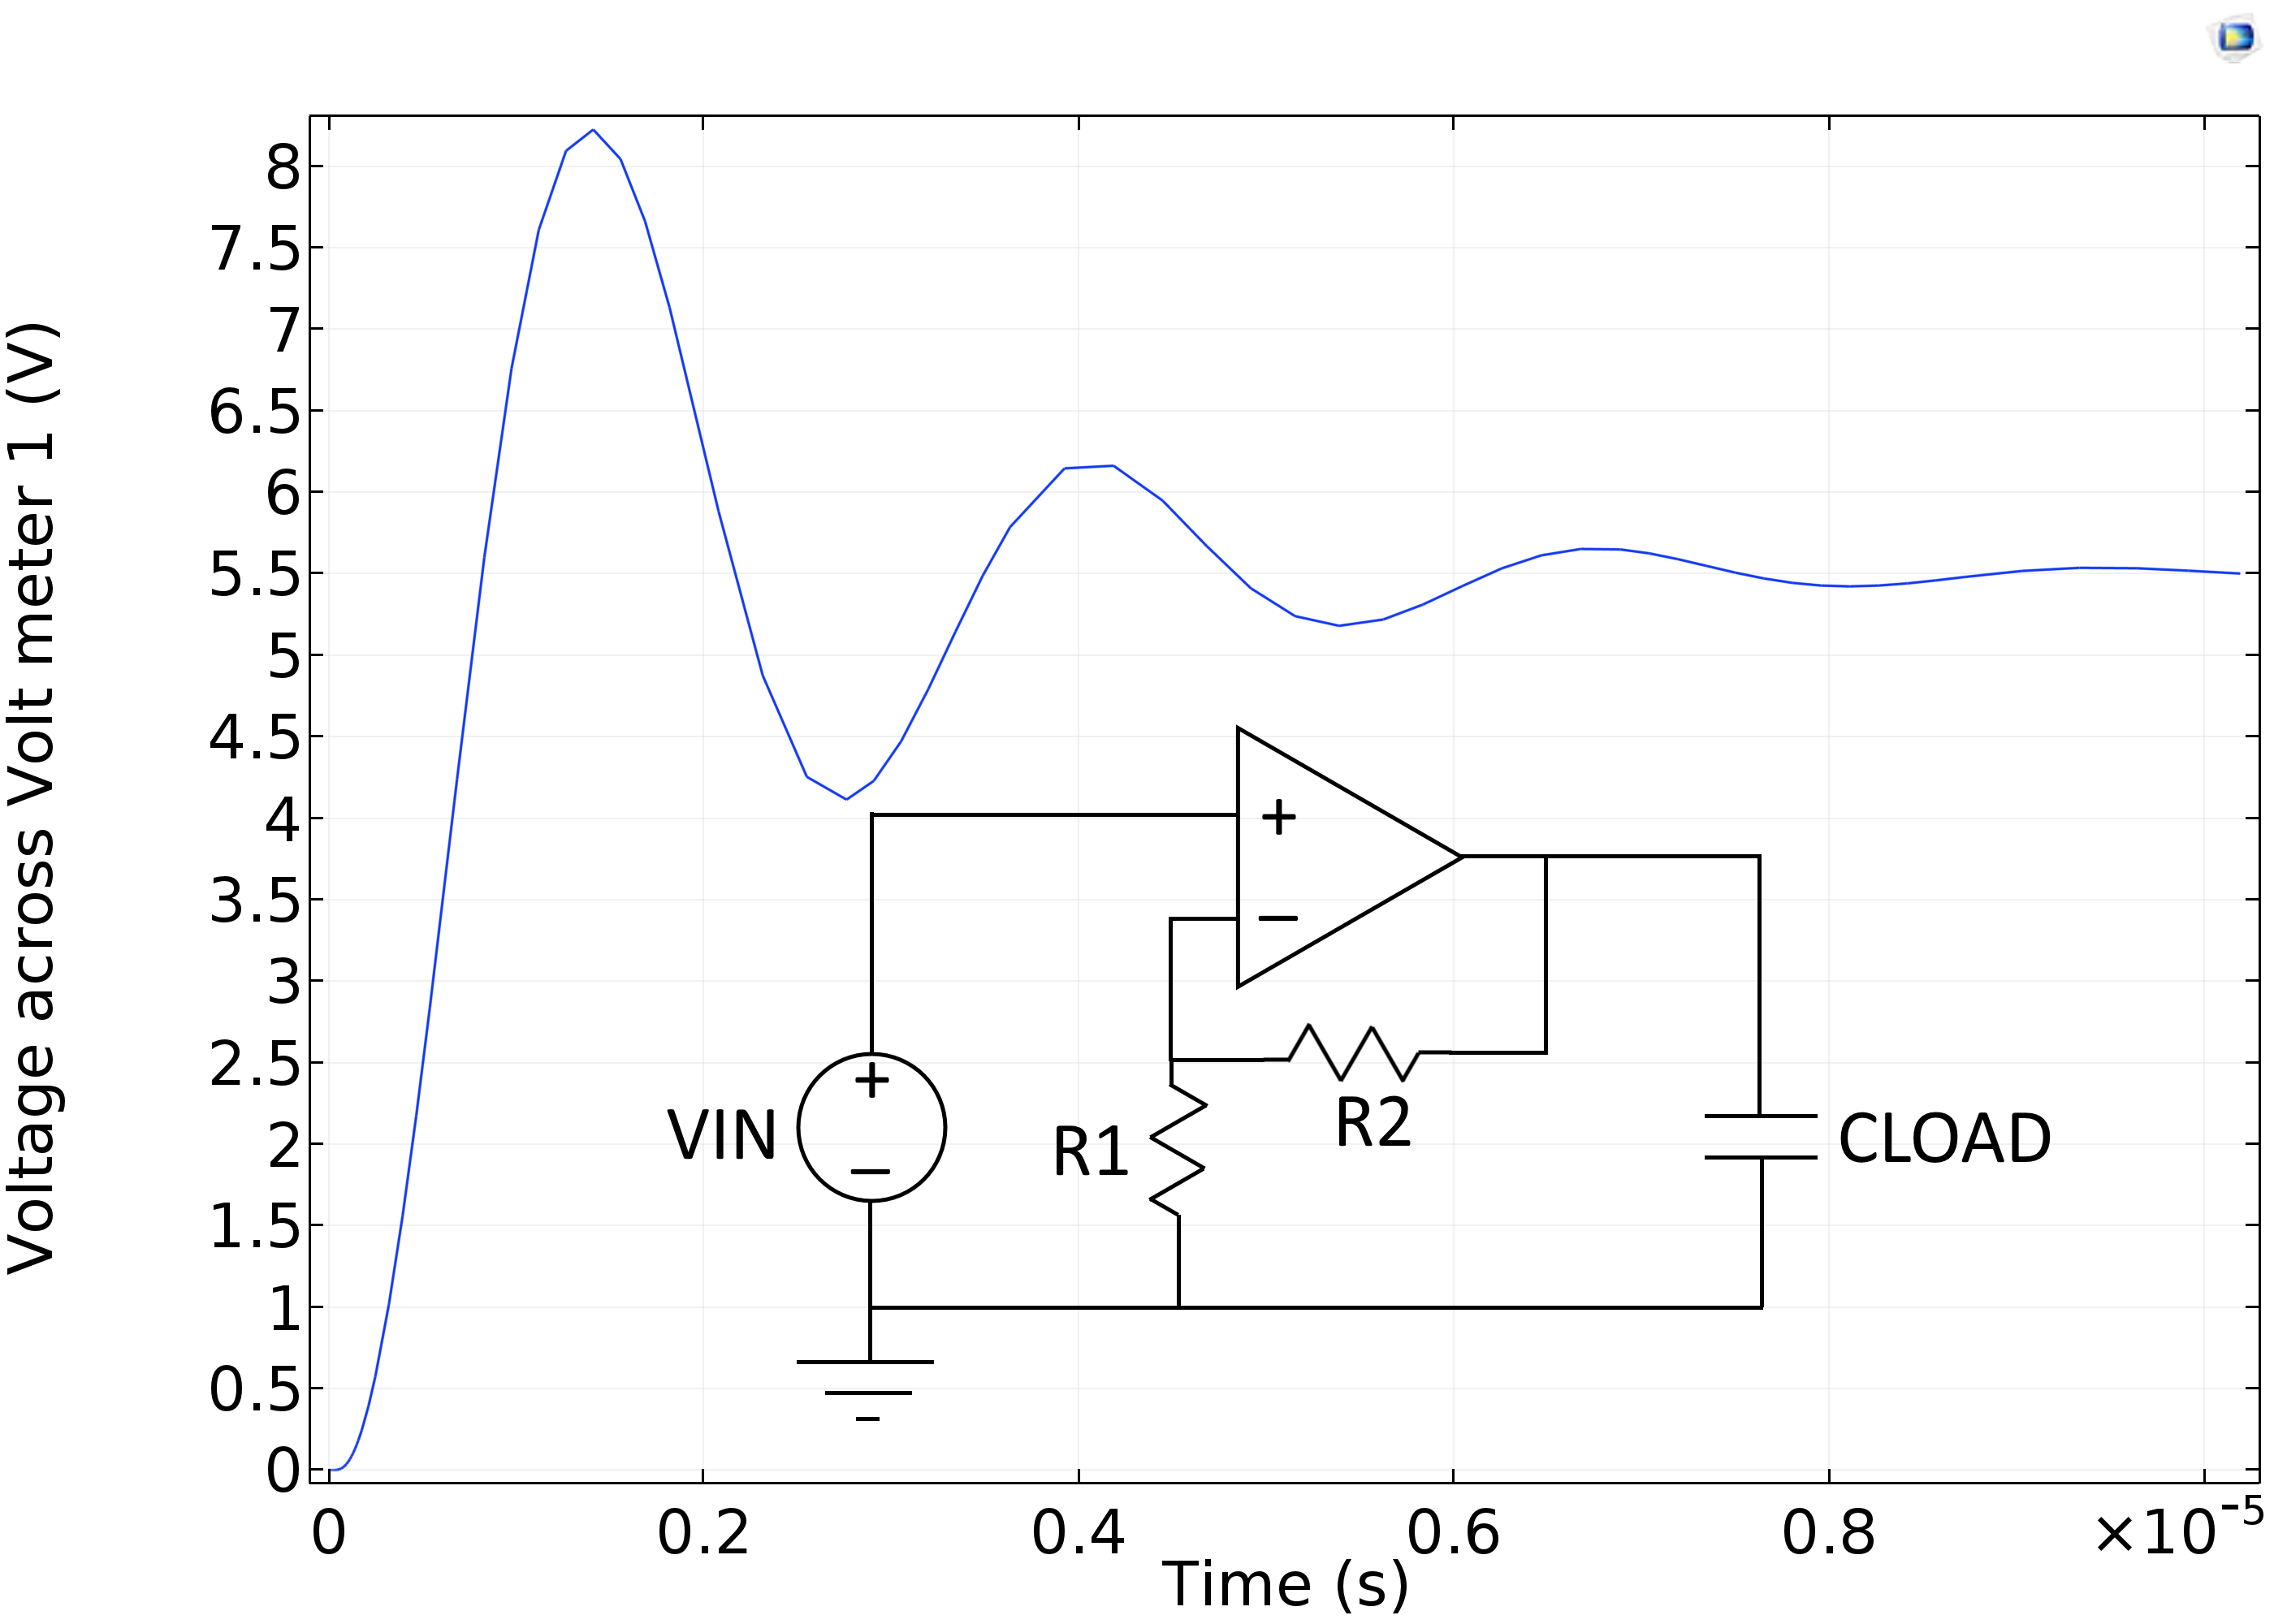 A plot from the Operational Amplifier with Capacitive Load tutorial model.